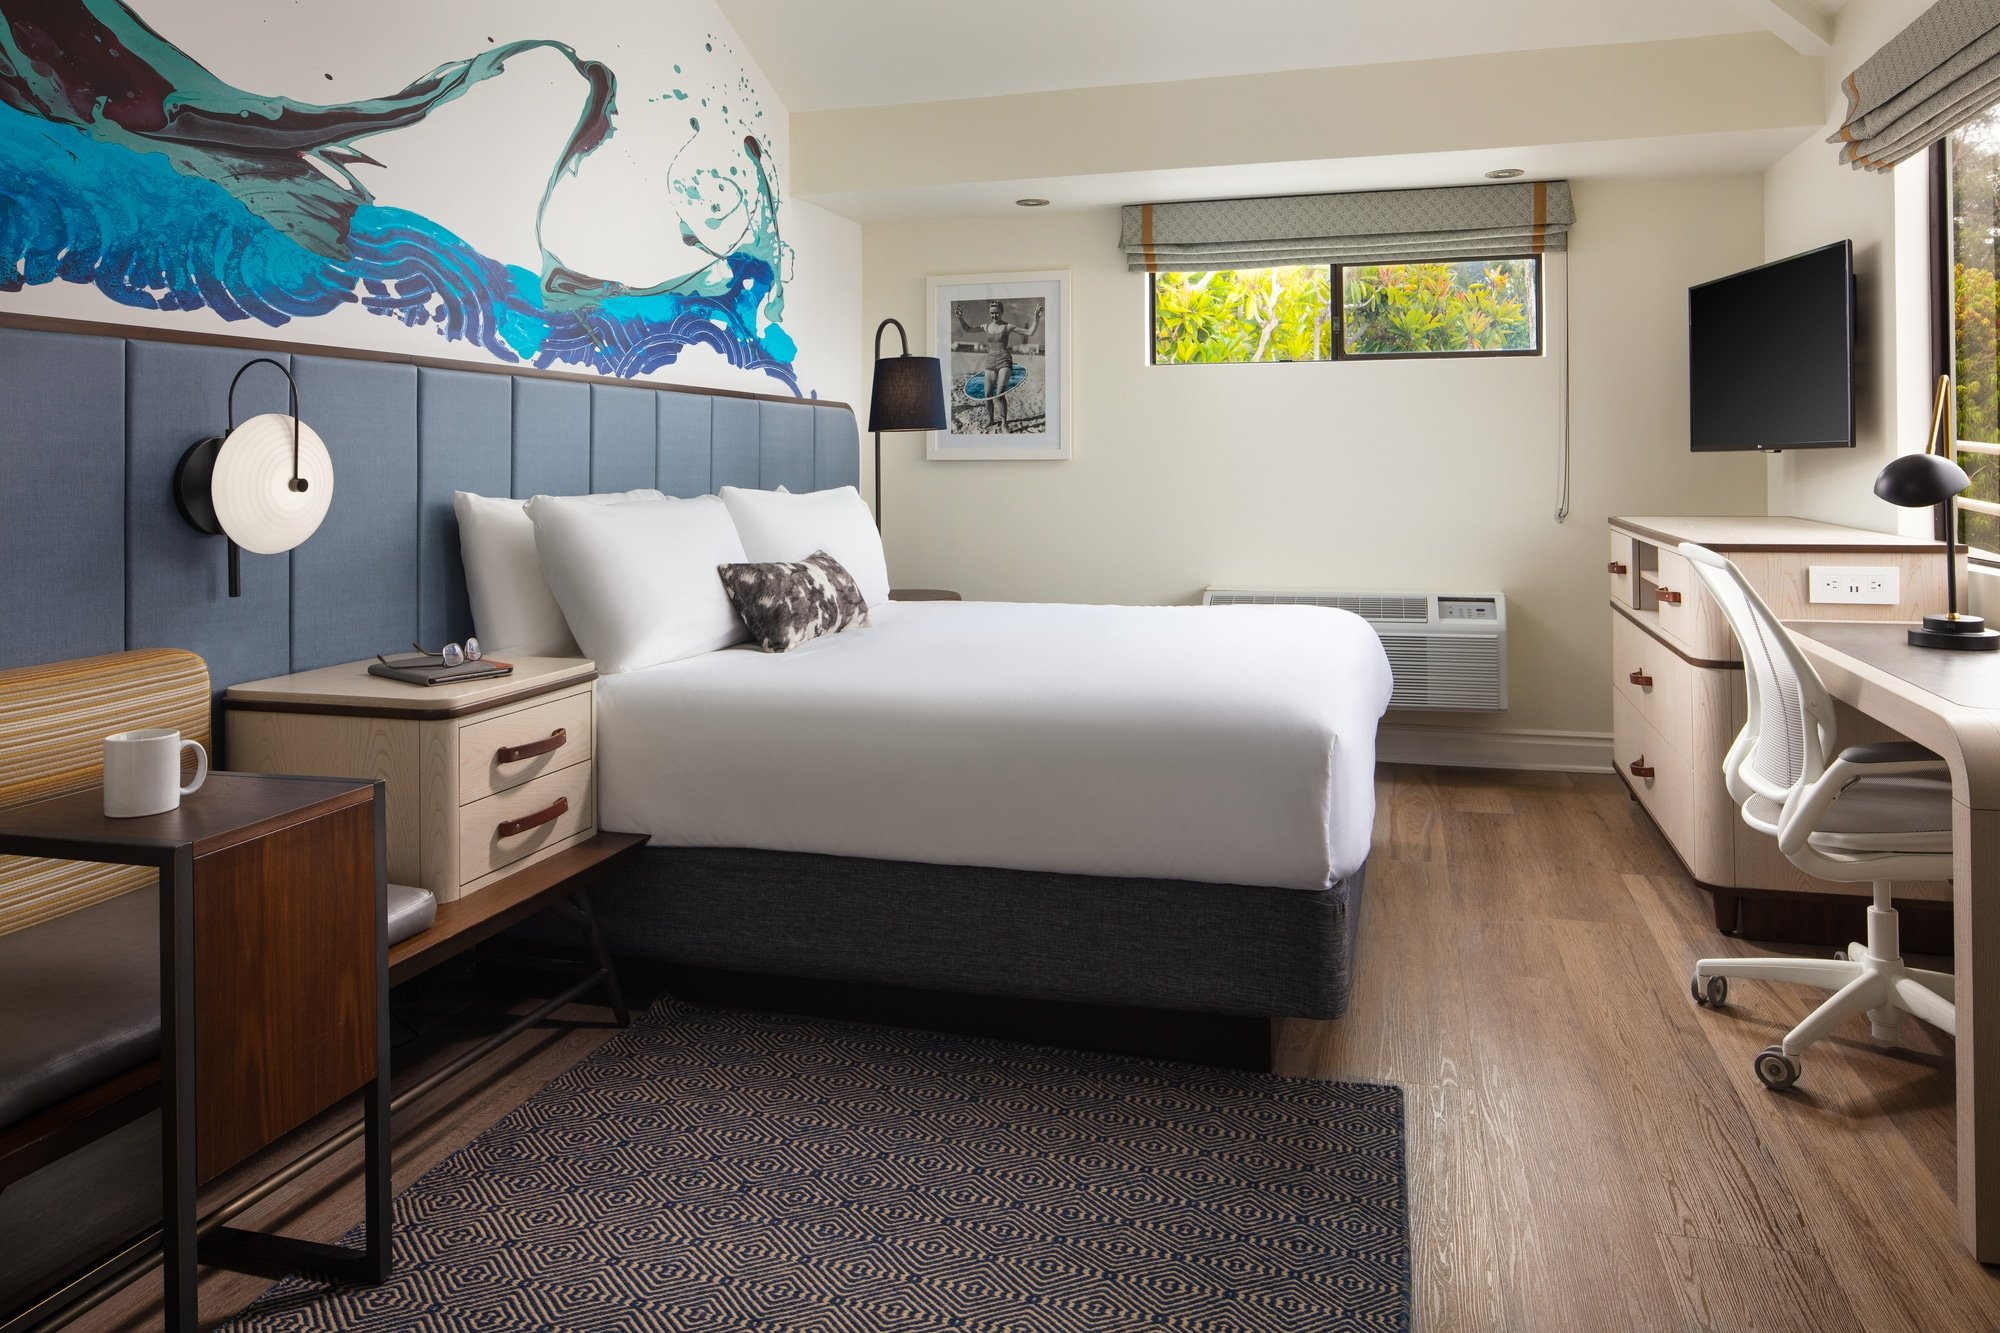 A king bed room with a beach theme of grey and neutral colors with blue wave art on the wall.